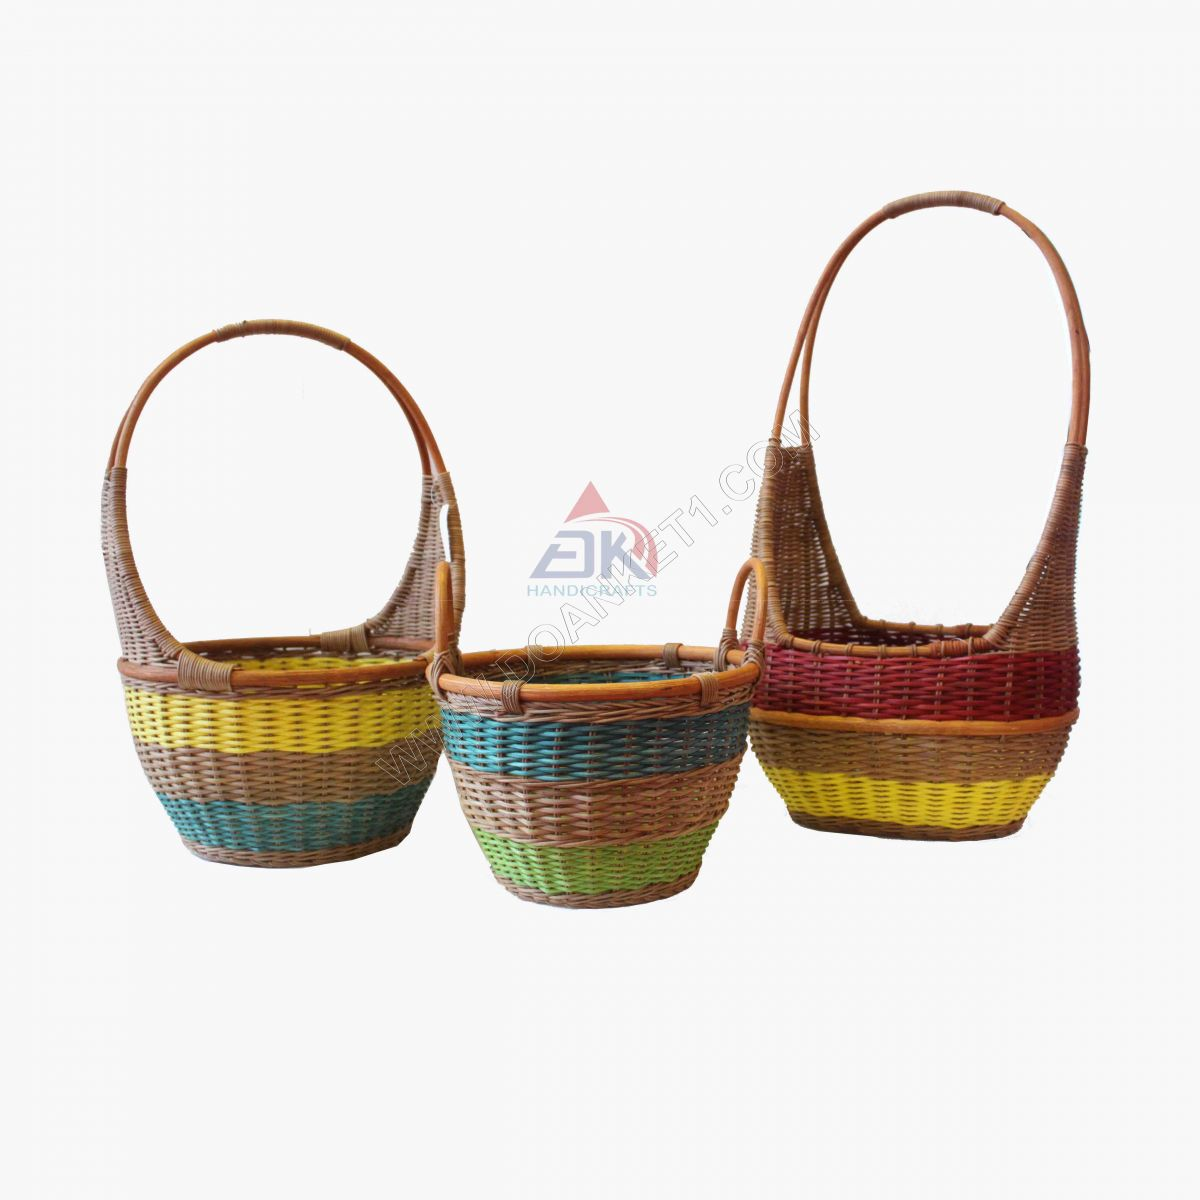 WICKER HANDLE BASKET # DK425